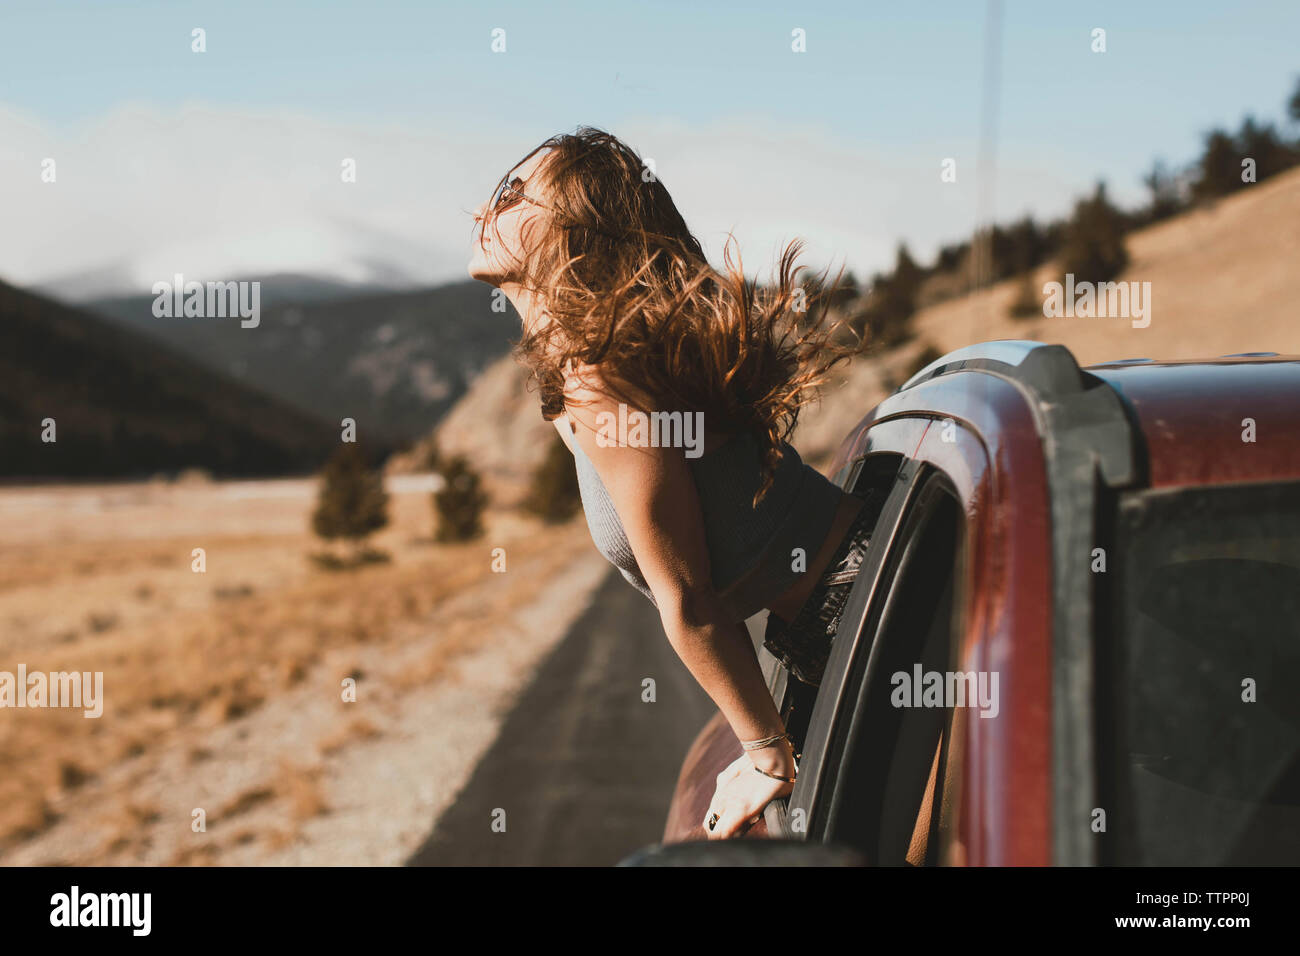 Side view of carefree young woman with tousled hair leaning out from car window - Stock Image